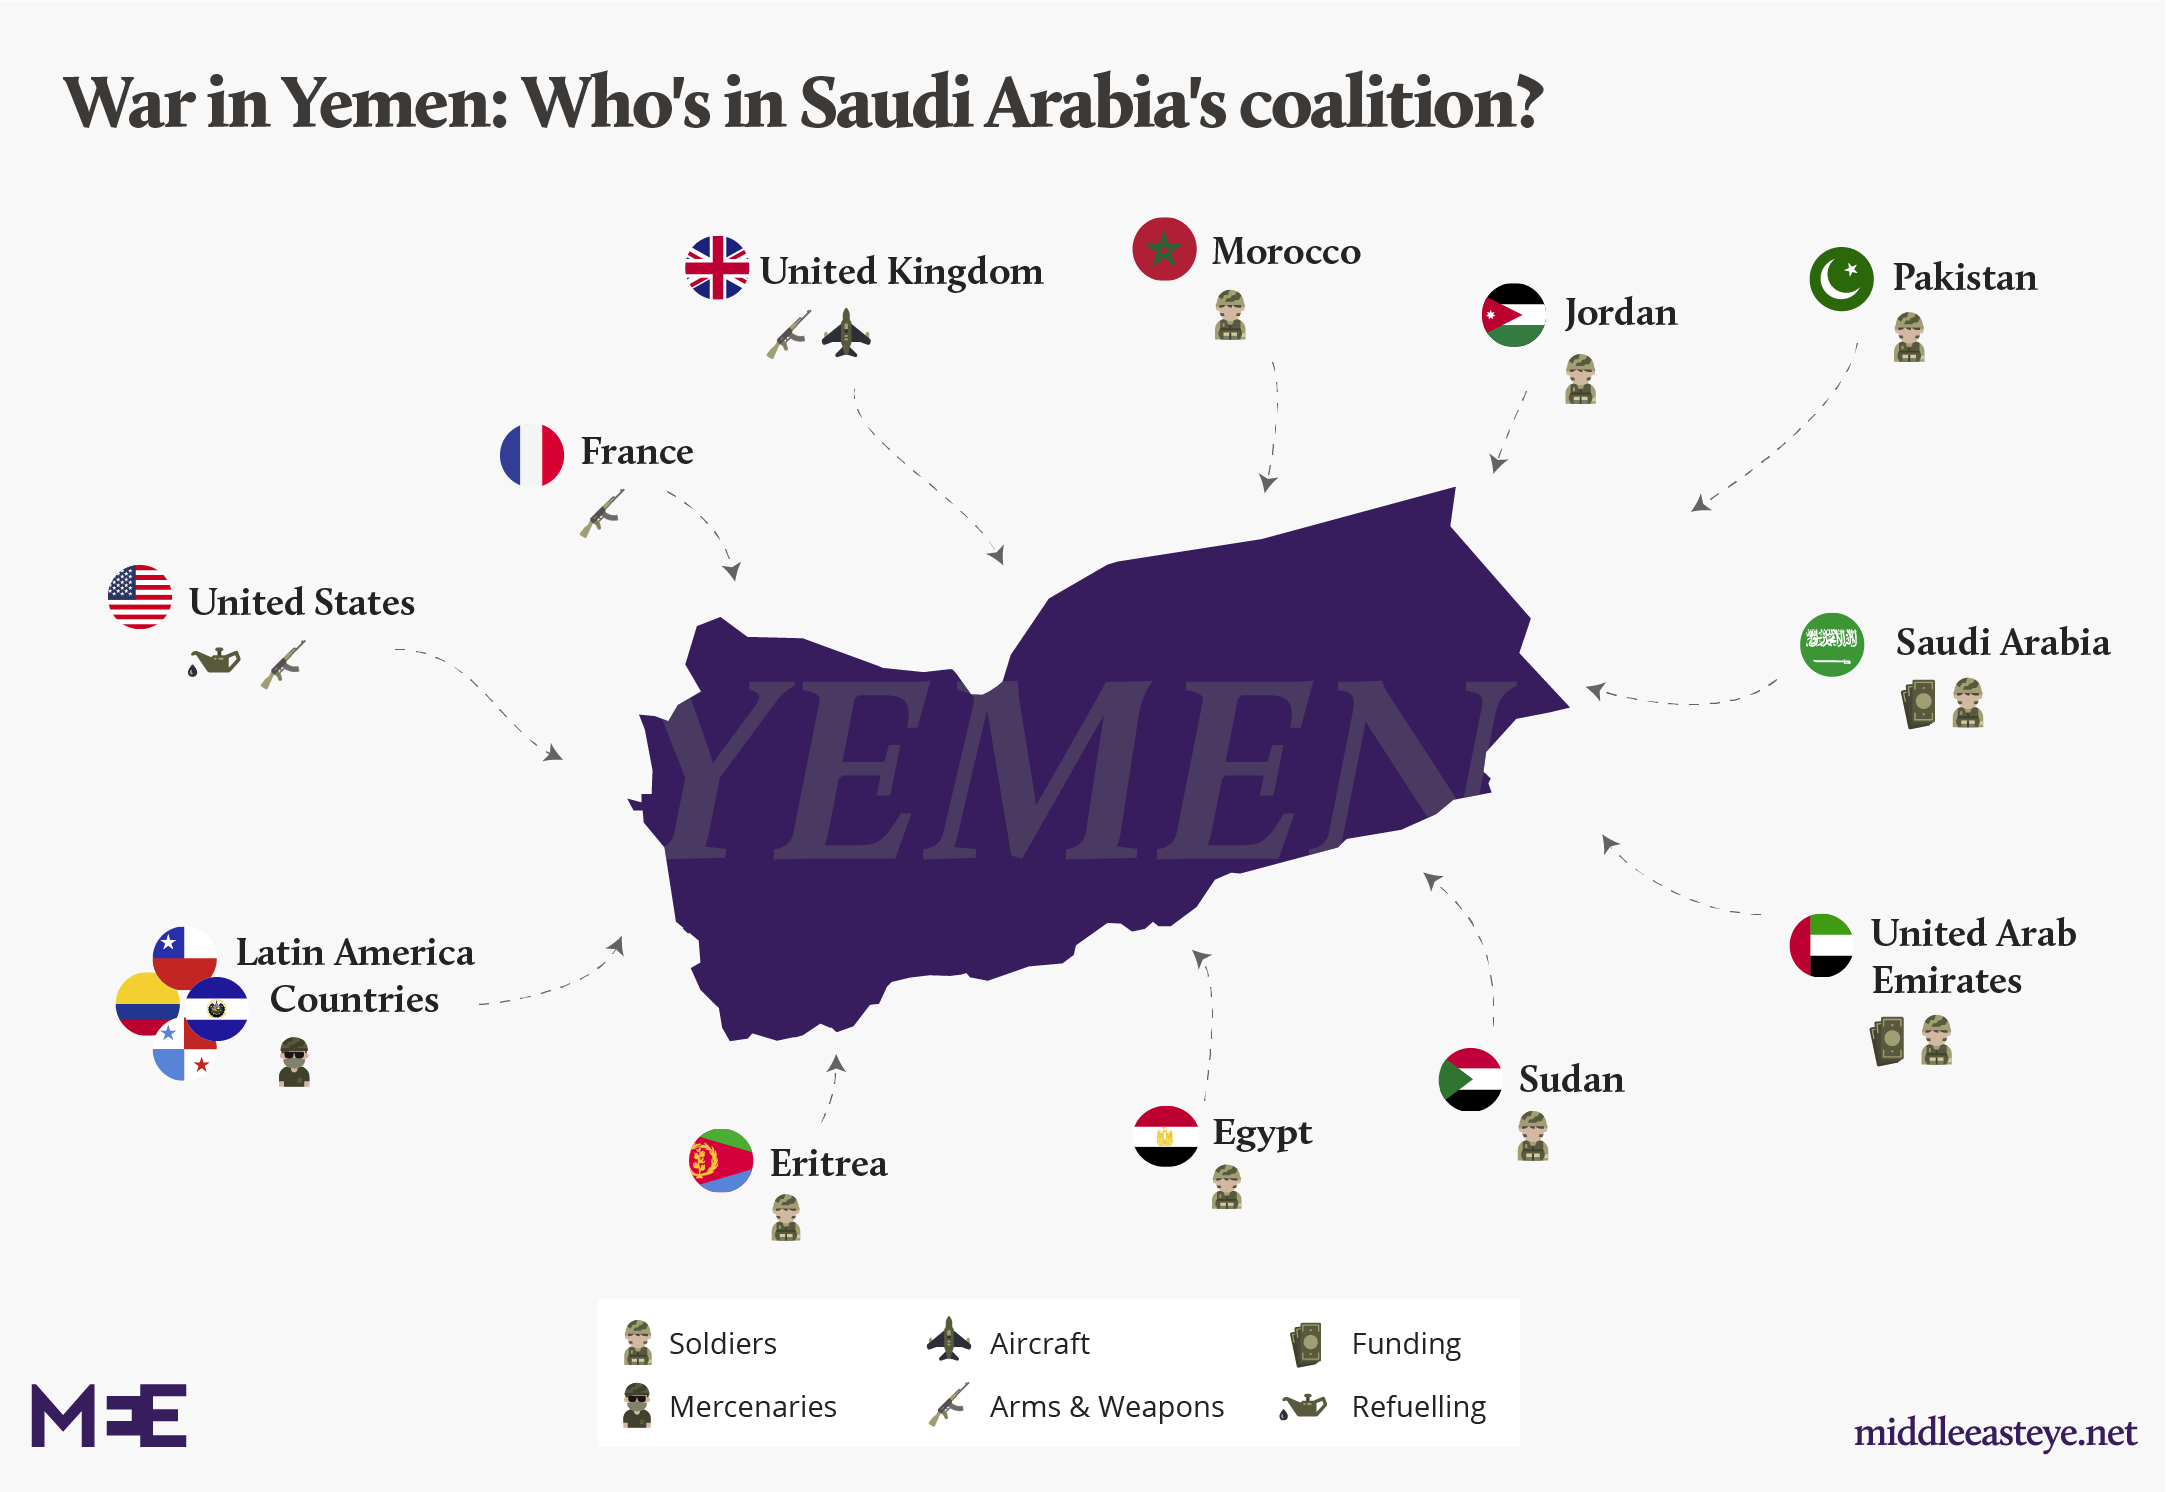 Saudi's coalition in Yemen: Militias and mercenaries backed by